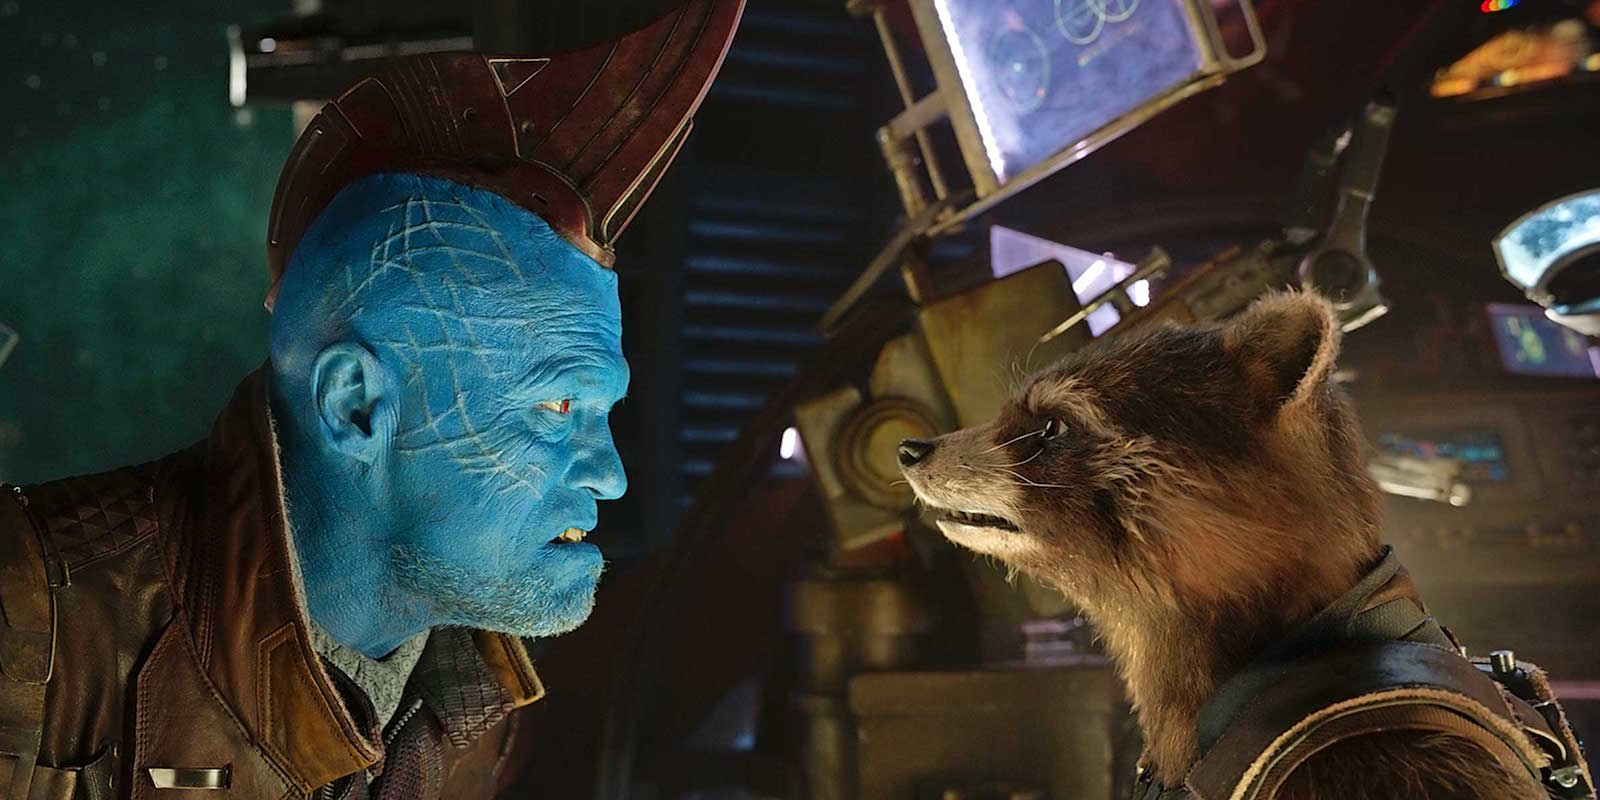 guardians of the galaxy - photo #21